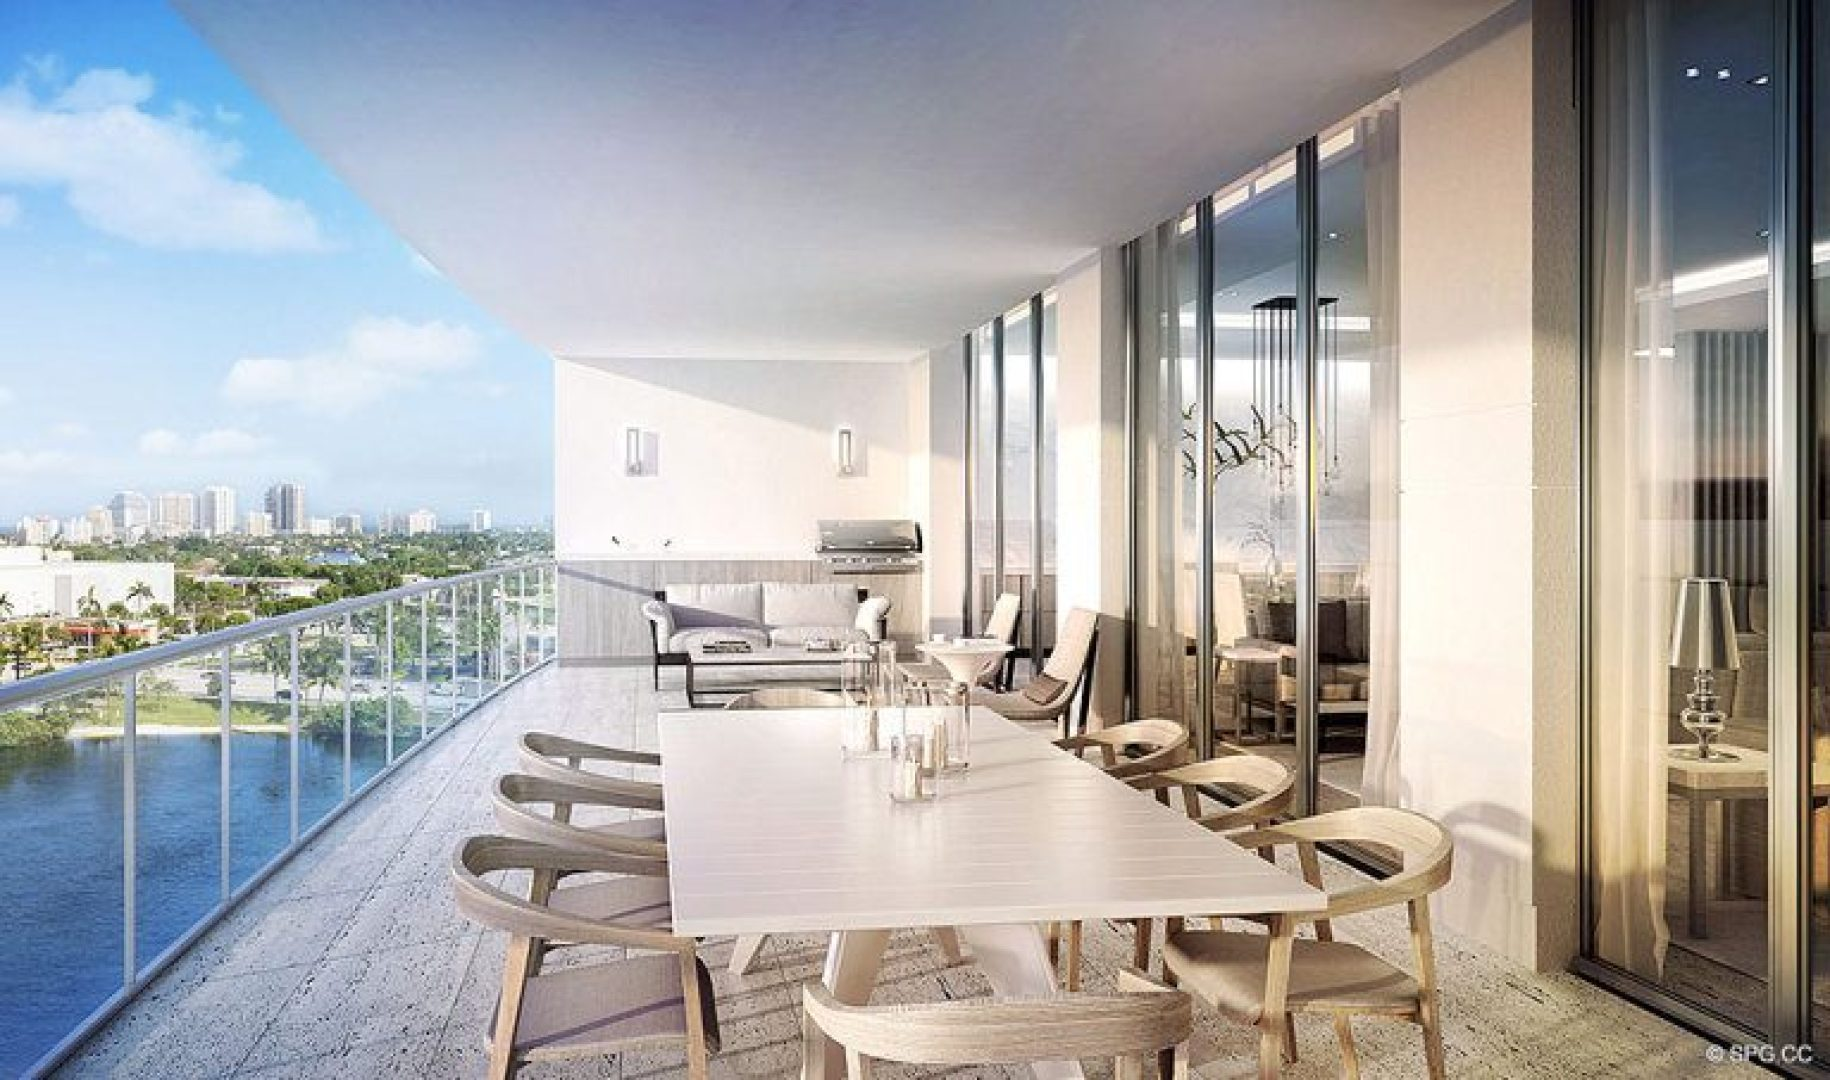 Large Private Terraces at Riva, Luxury Waterfront Condos in Fort Lauderdale, Florida 33304.